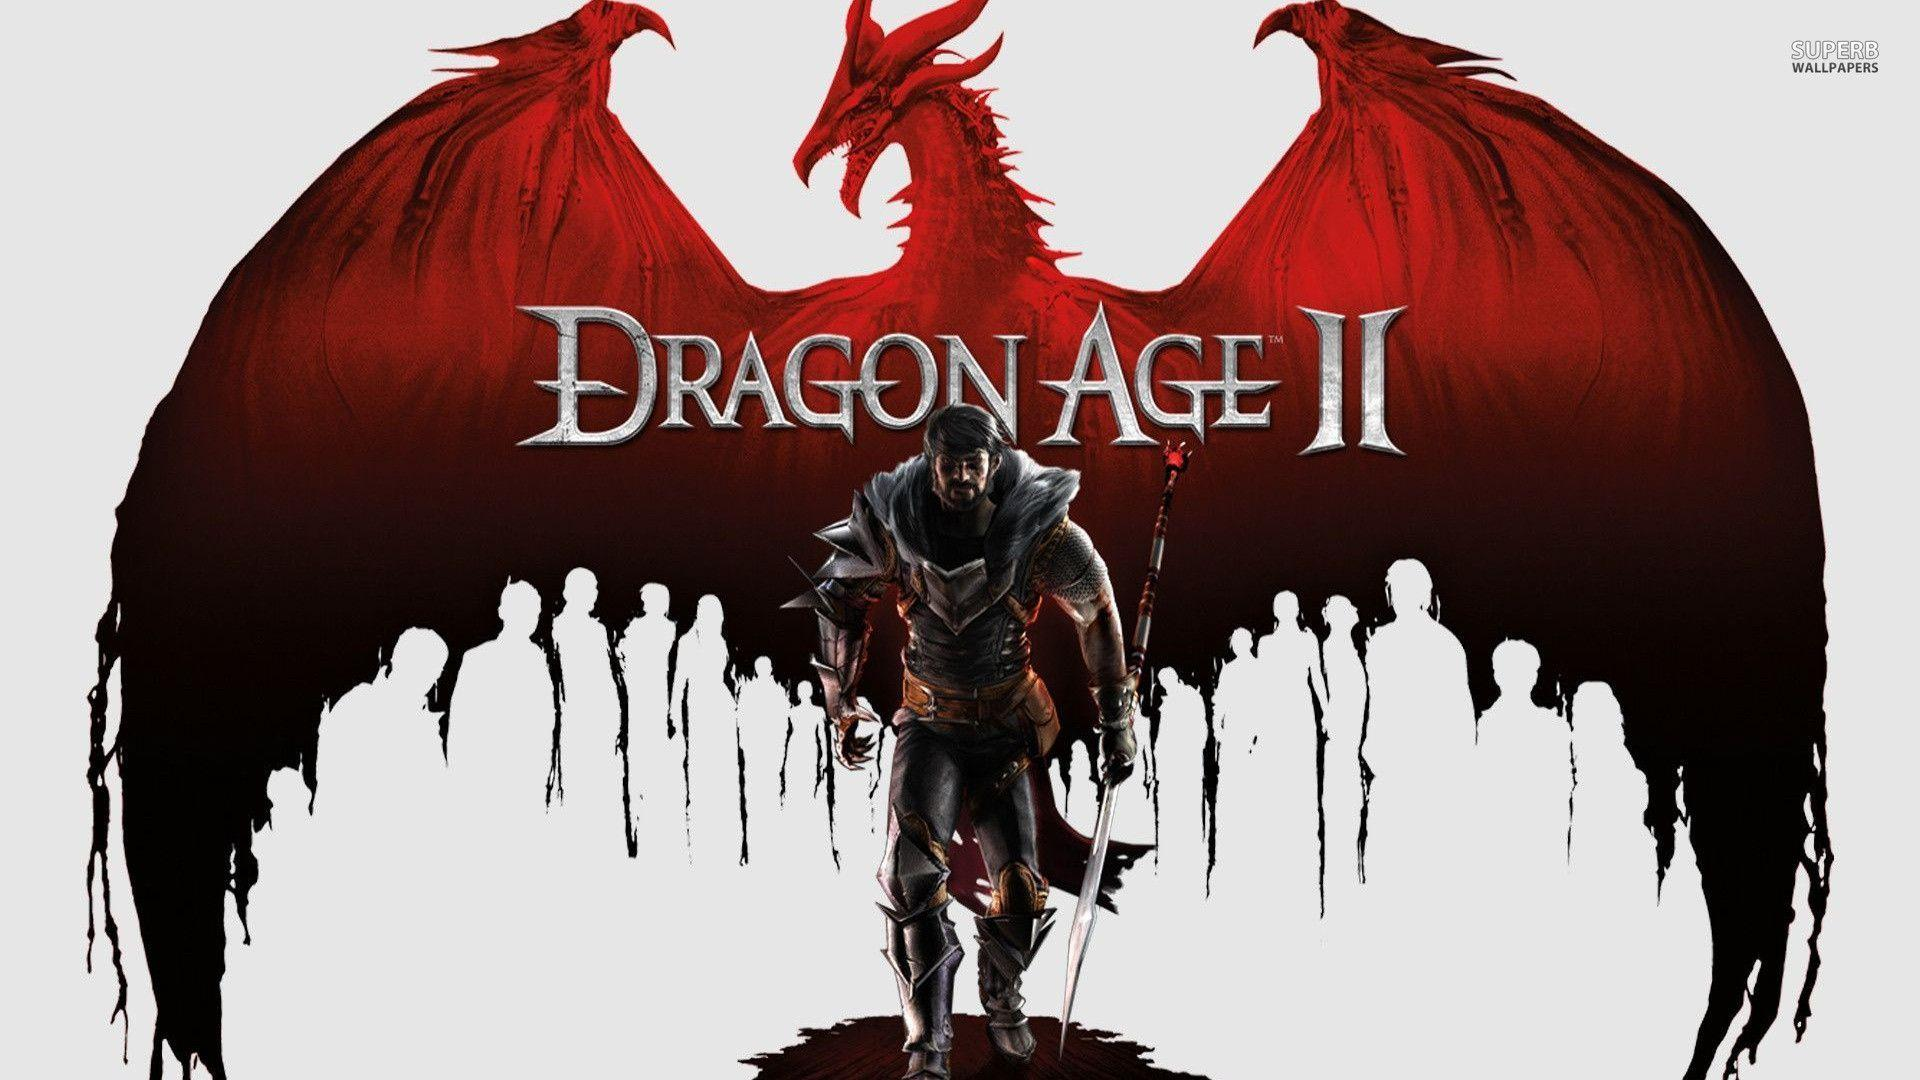 Dragon Age II wallpaper - Game wallpapers - #